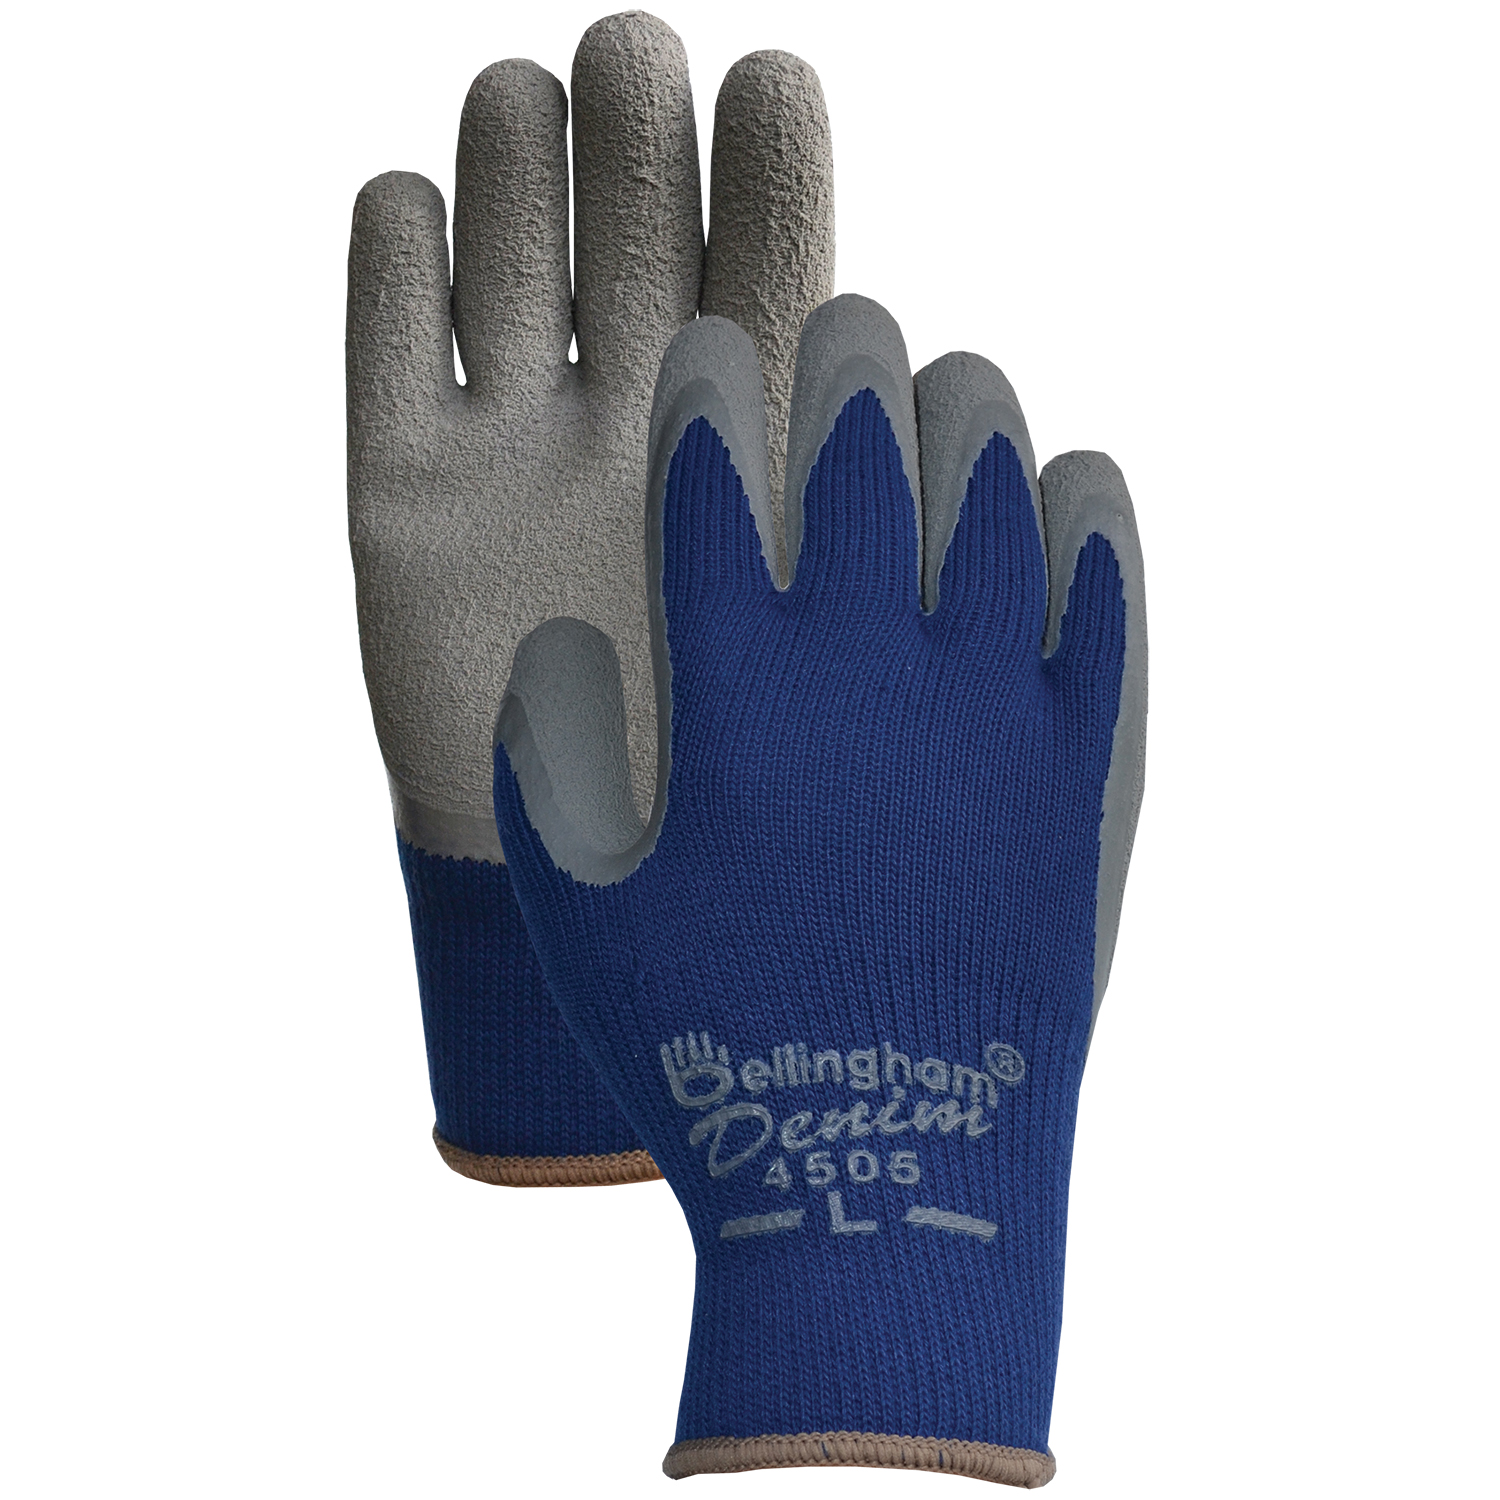 Bellingham Denim™ Work Glove 3-Pack